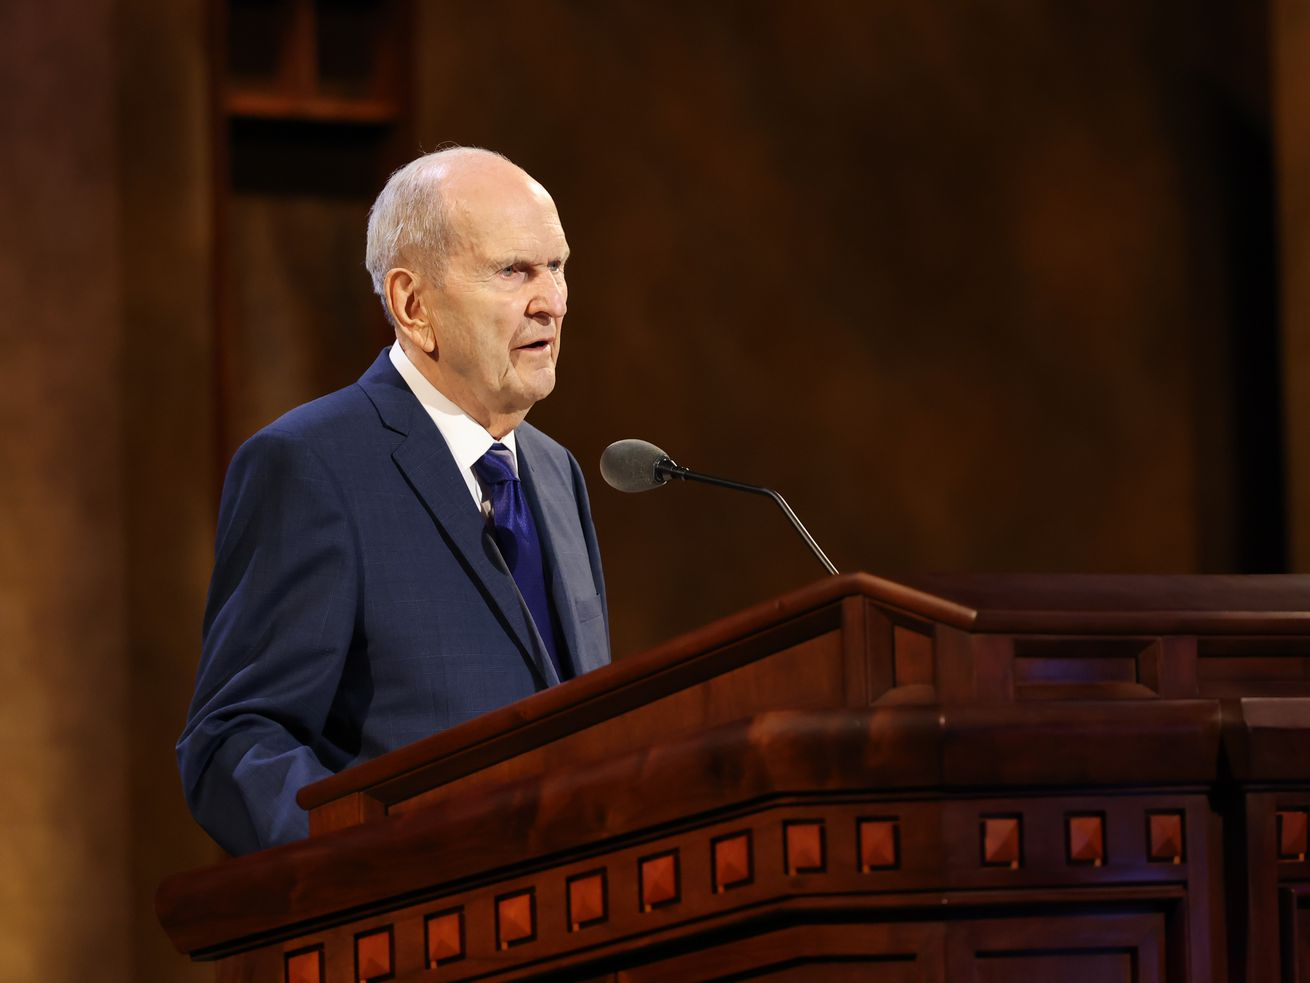 President Russell M. Nelson speaks during the Sunday afternoon session of the 191st Annual General Conference of The Church of Jesus Christ of Latter-day Saints in Salt Lake City on April 4, 2021.